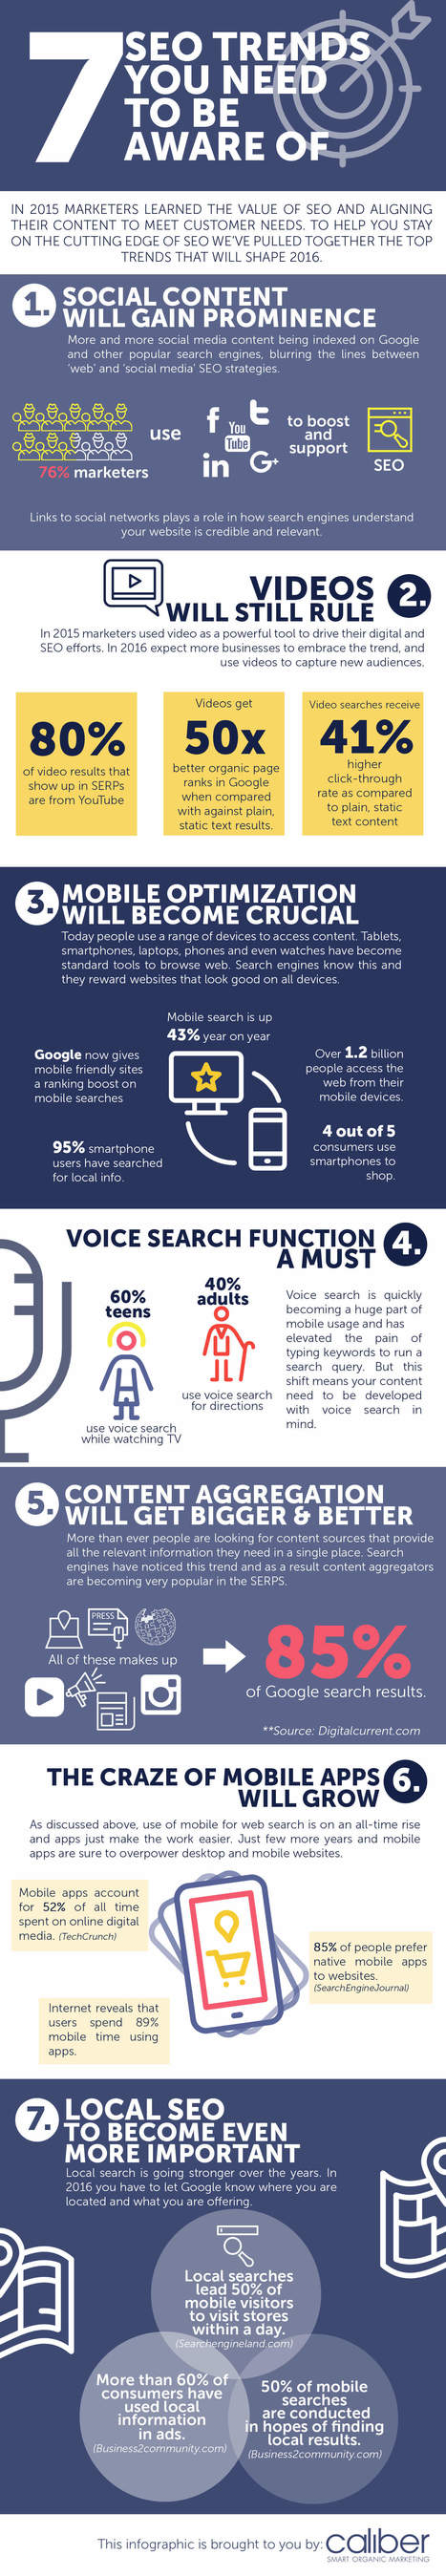 2016 SEO Trends to Be Aware of This Year [Infographic] | SEO and Social Media Marketing | Scoop.it